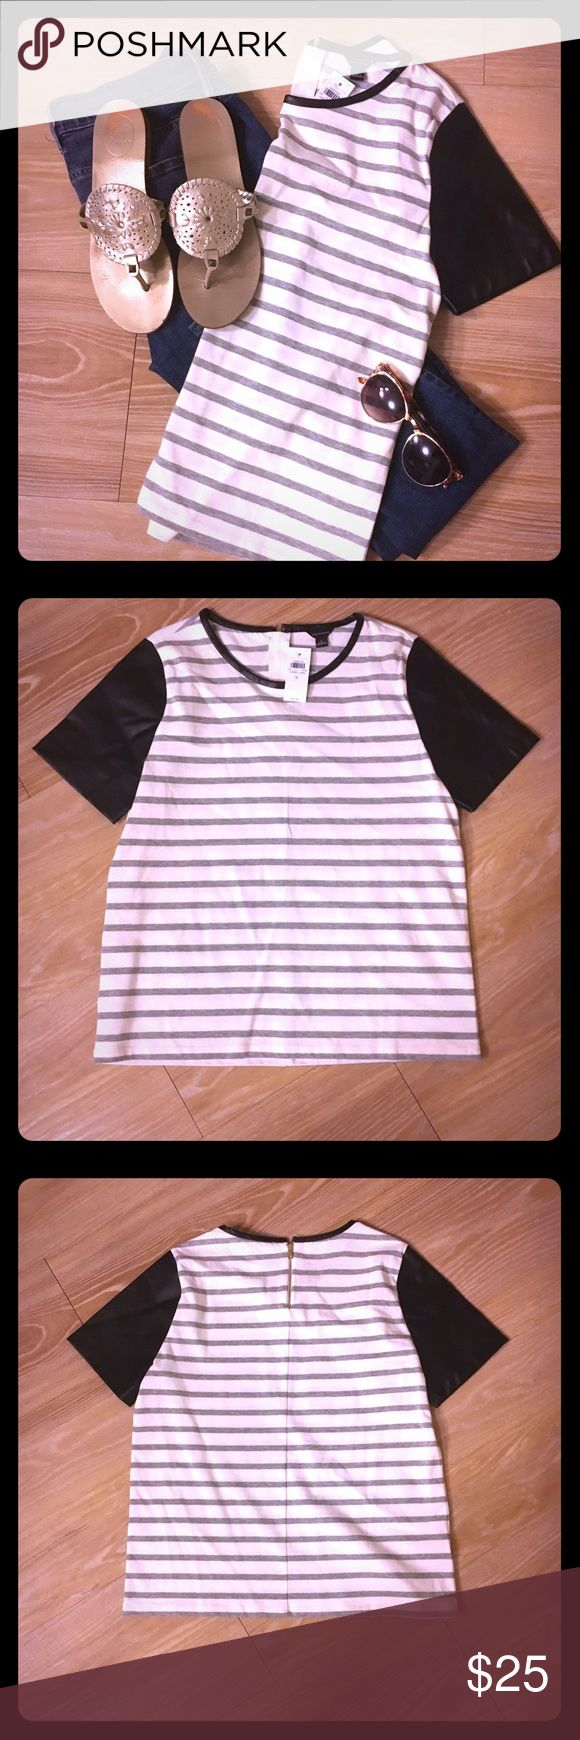 ANN TAYLOR: 🌟NWT shirt with leather like sleeves Super unique shirt with leather like sleeves, grey stripes, and a gold zipper detail on the back! Great with jeans or a cute black mini skirt! Adorable year round and for many casual to semi casual occasions! Ann Taylor Tops